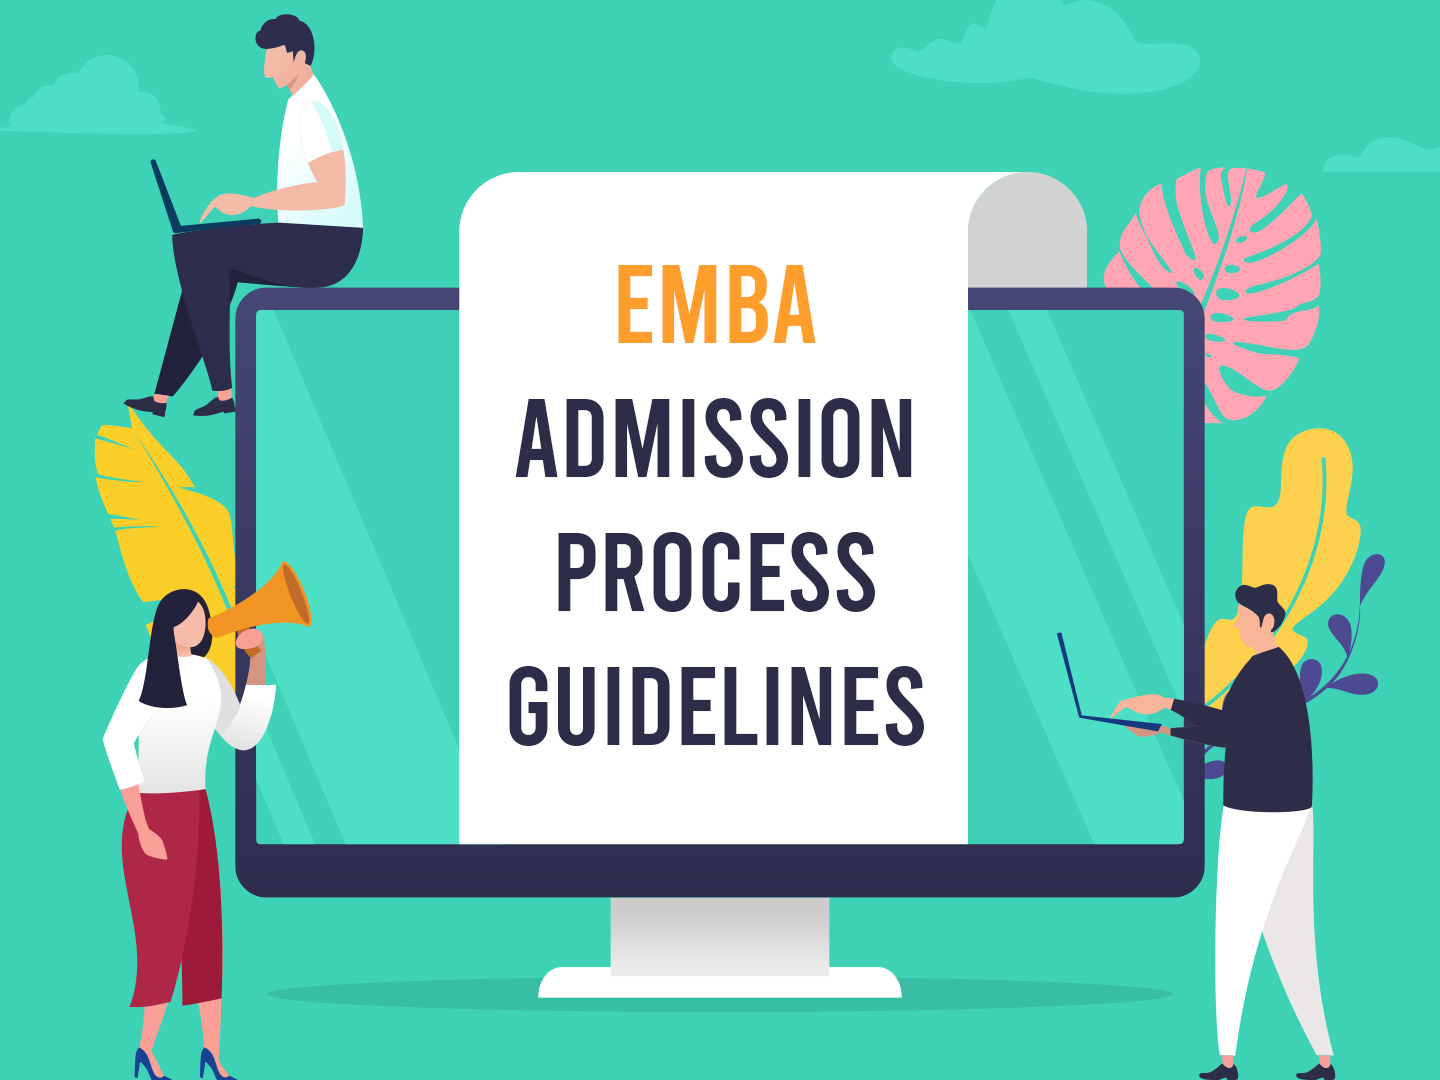 EMBA Overview and Step-by-Step Admission Guidelines - TSCFM